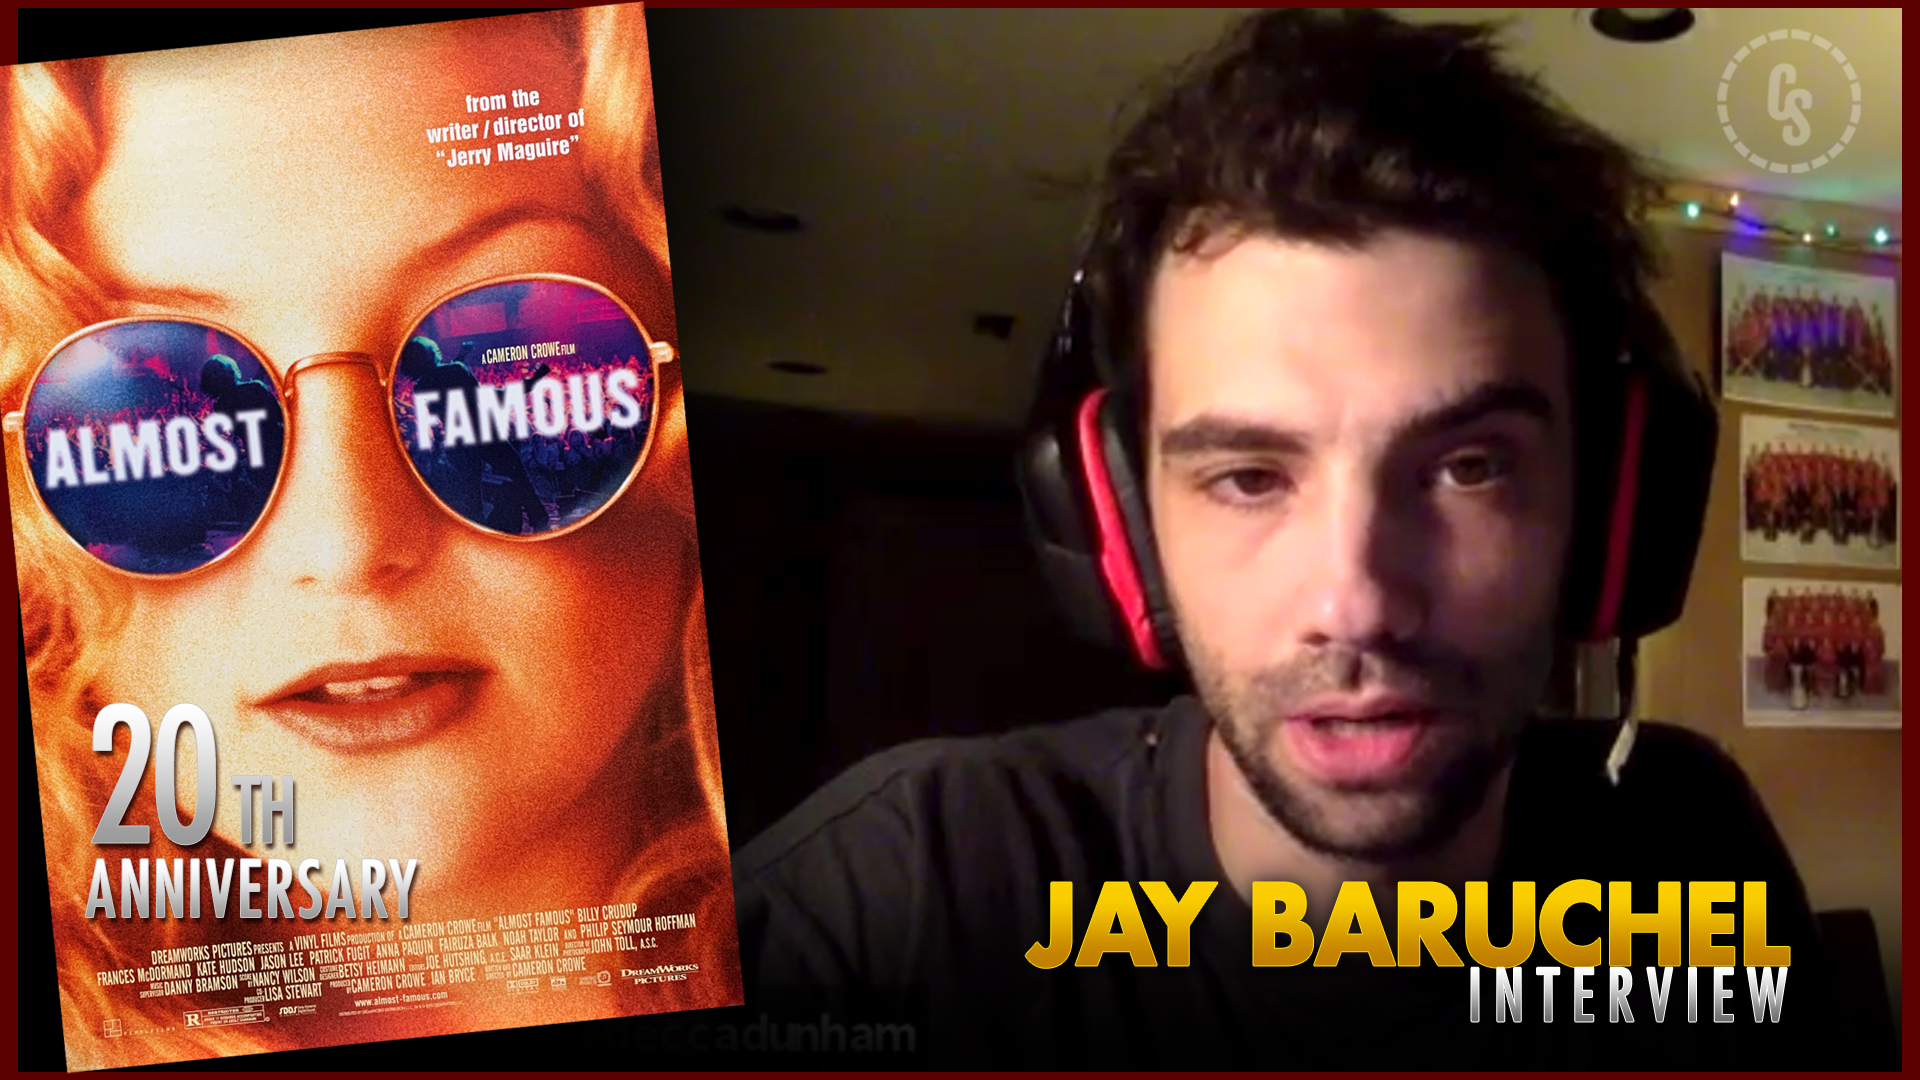 Exclusive: Jay Baruchel Discusses Almost Famous 20th Anniversary